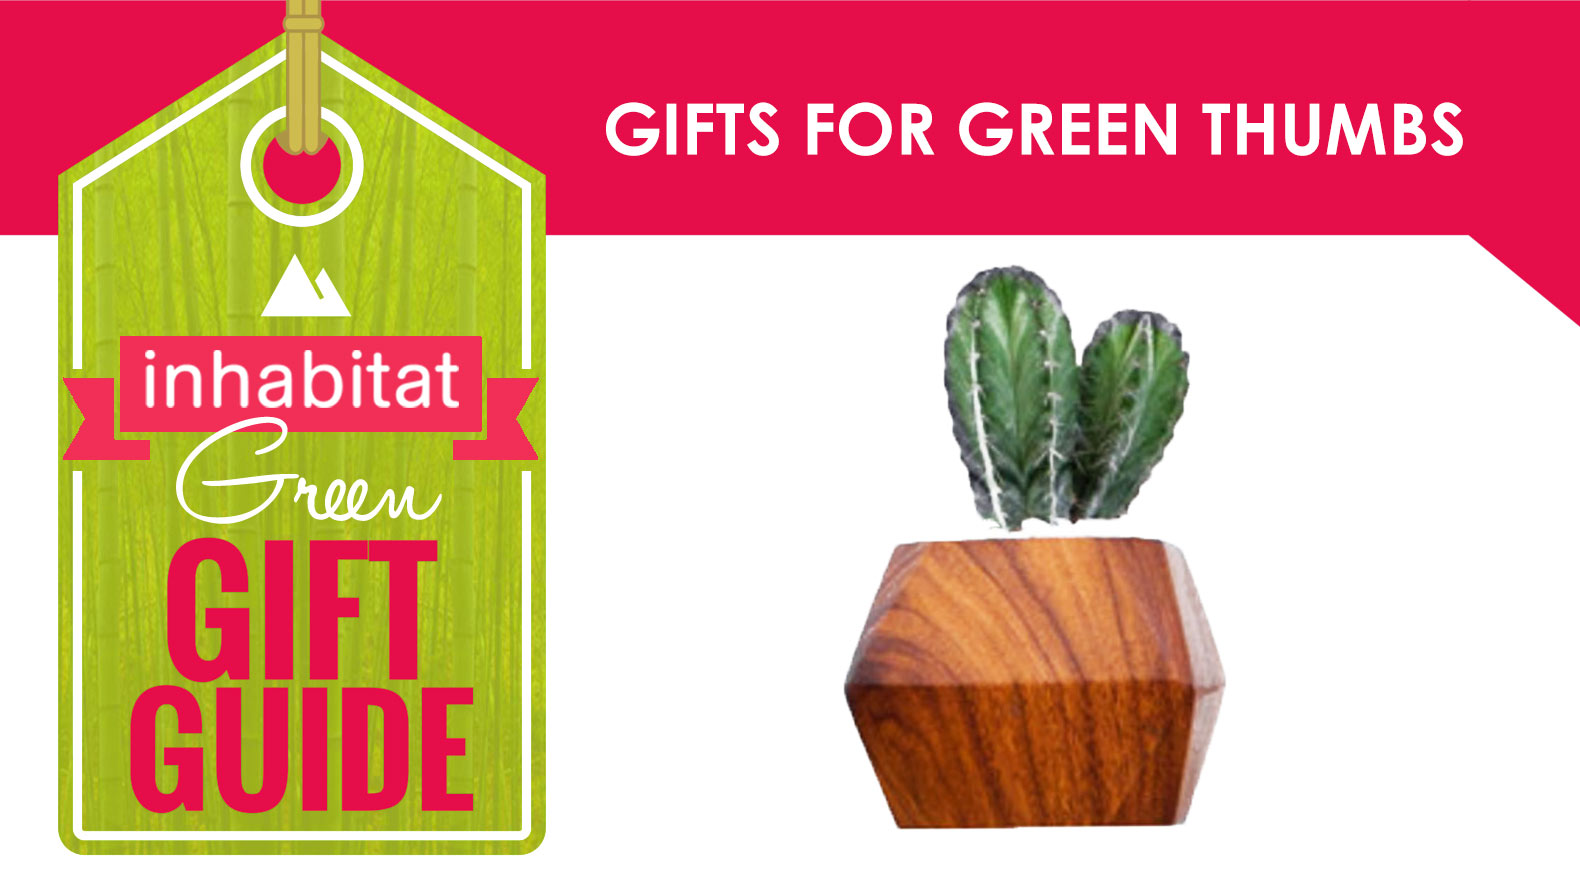 Nice Verdant Gift Ideas Gardeners Home Depot Gifts Gardeners Reddit Green Thumb Seed Bombs Inhabitat Green Architecture Gifts houzz-03 Gifts For Gardeners